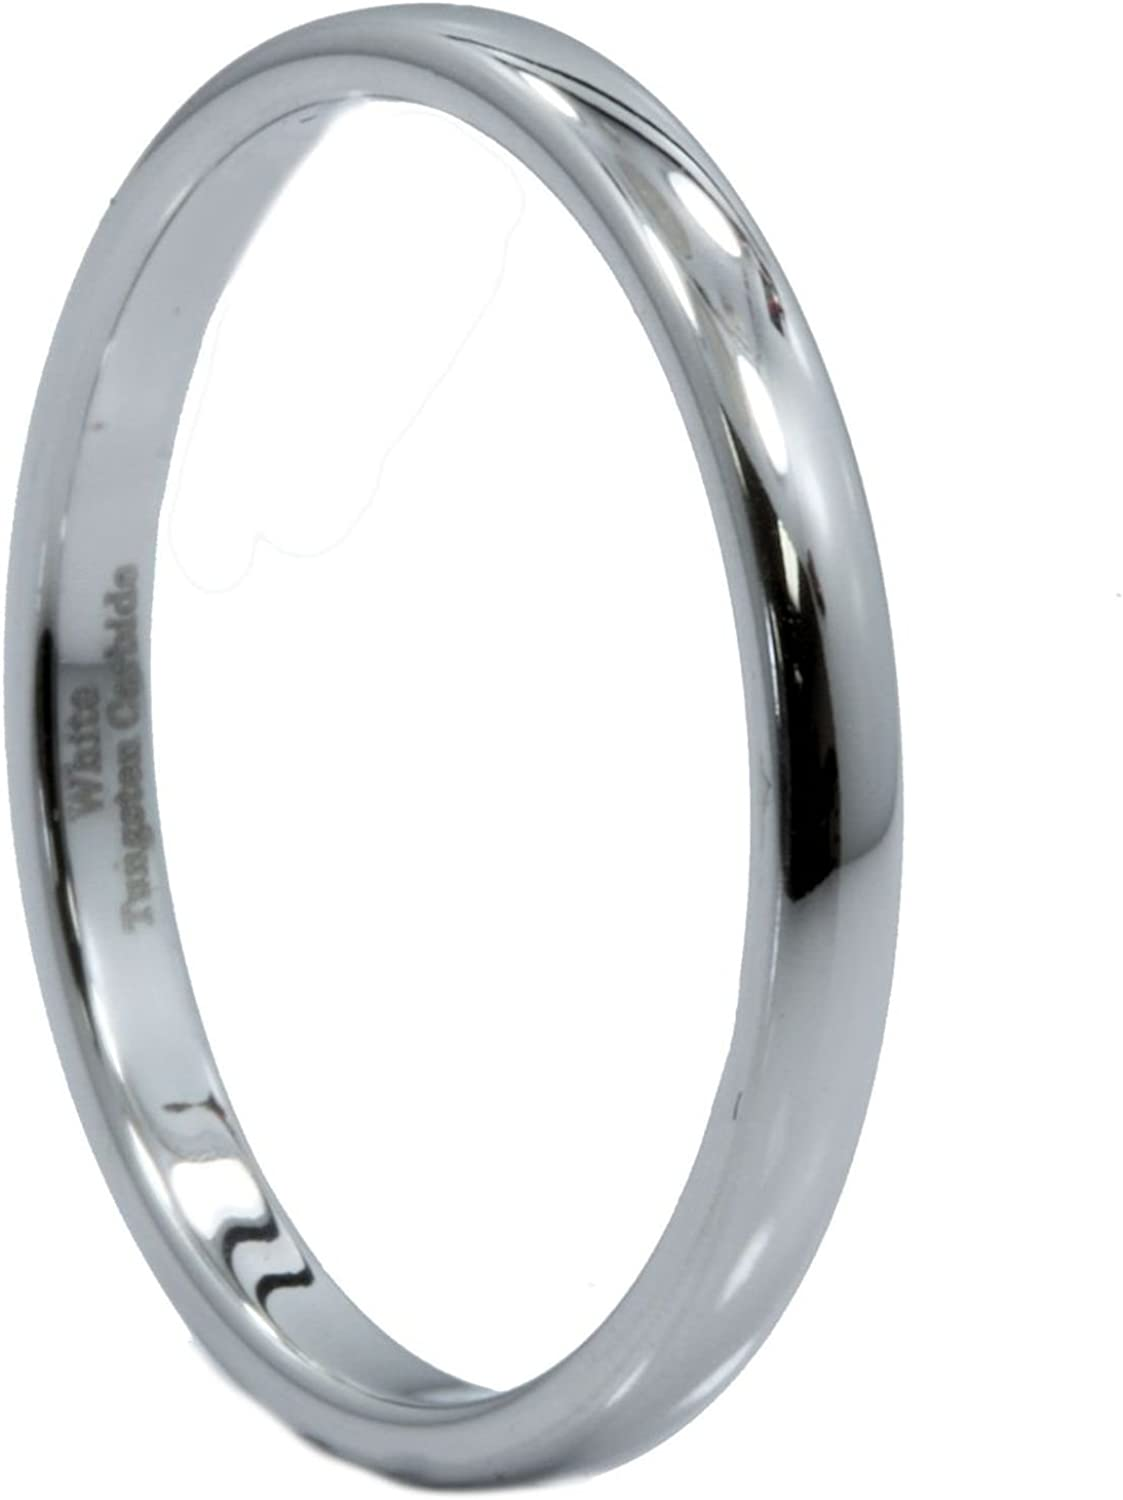 Tungsten Carbide Polished Pipe Cut Black Ring 2 mm